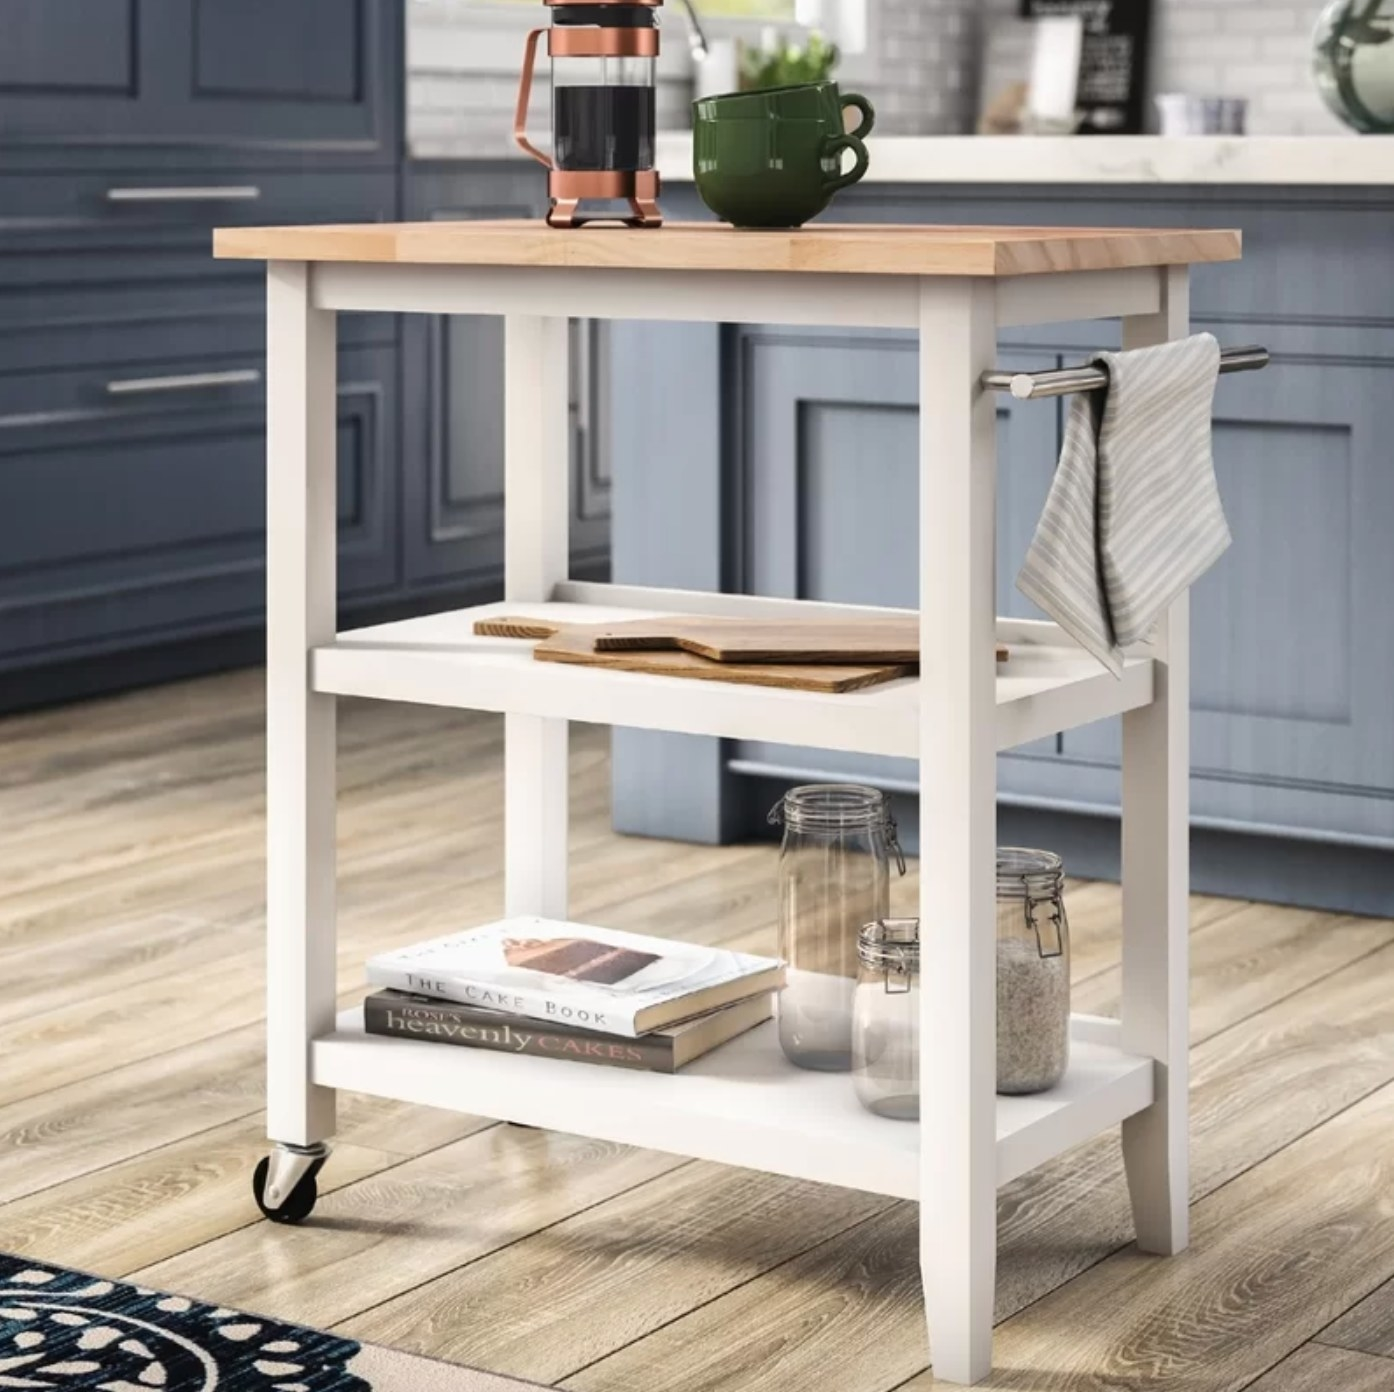 The kitchen cart with a wood cutting board top and white legs and shelves